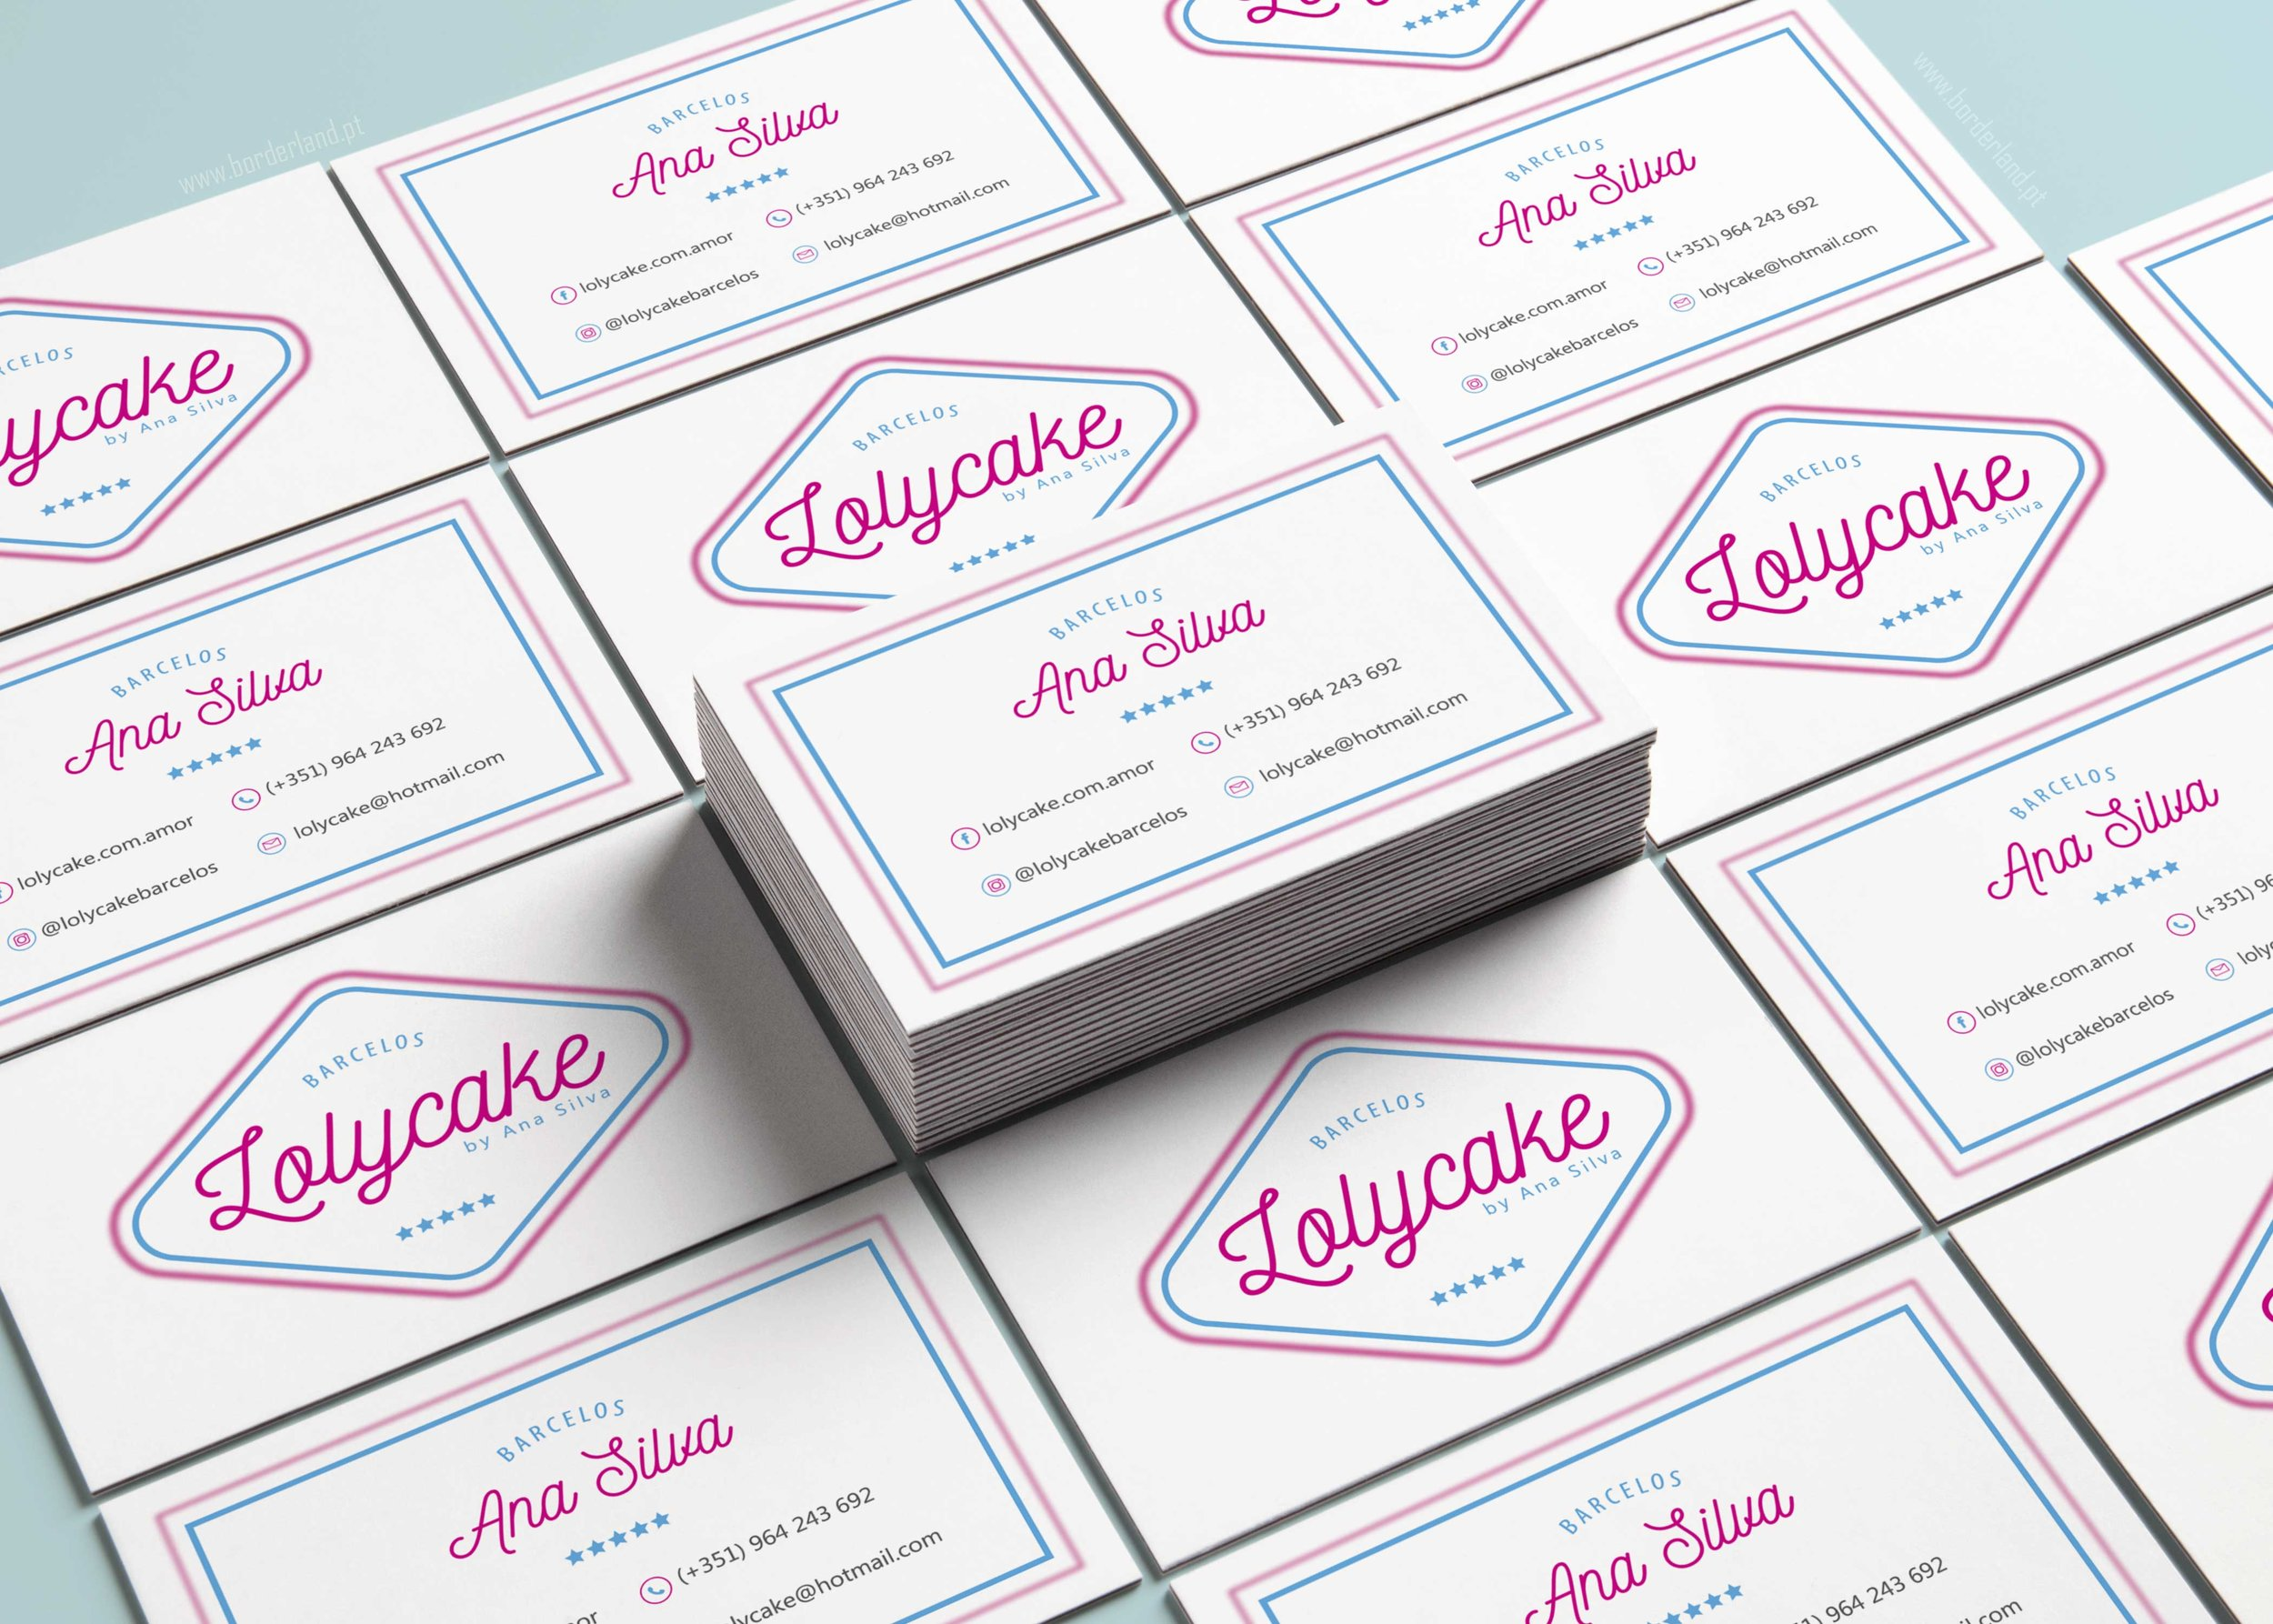 Business-Cards-Lolycake-mockup.jpg